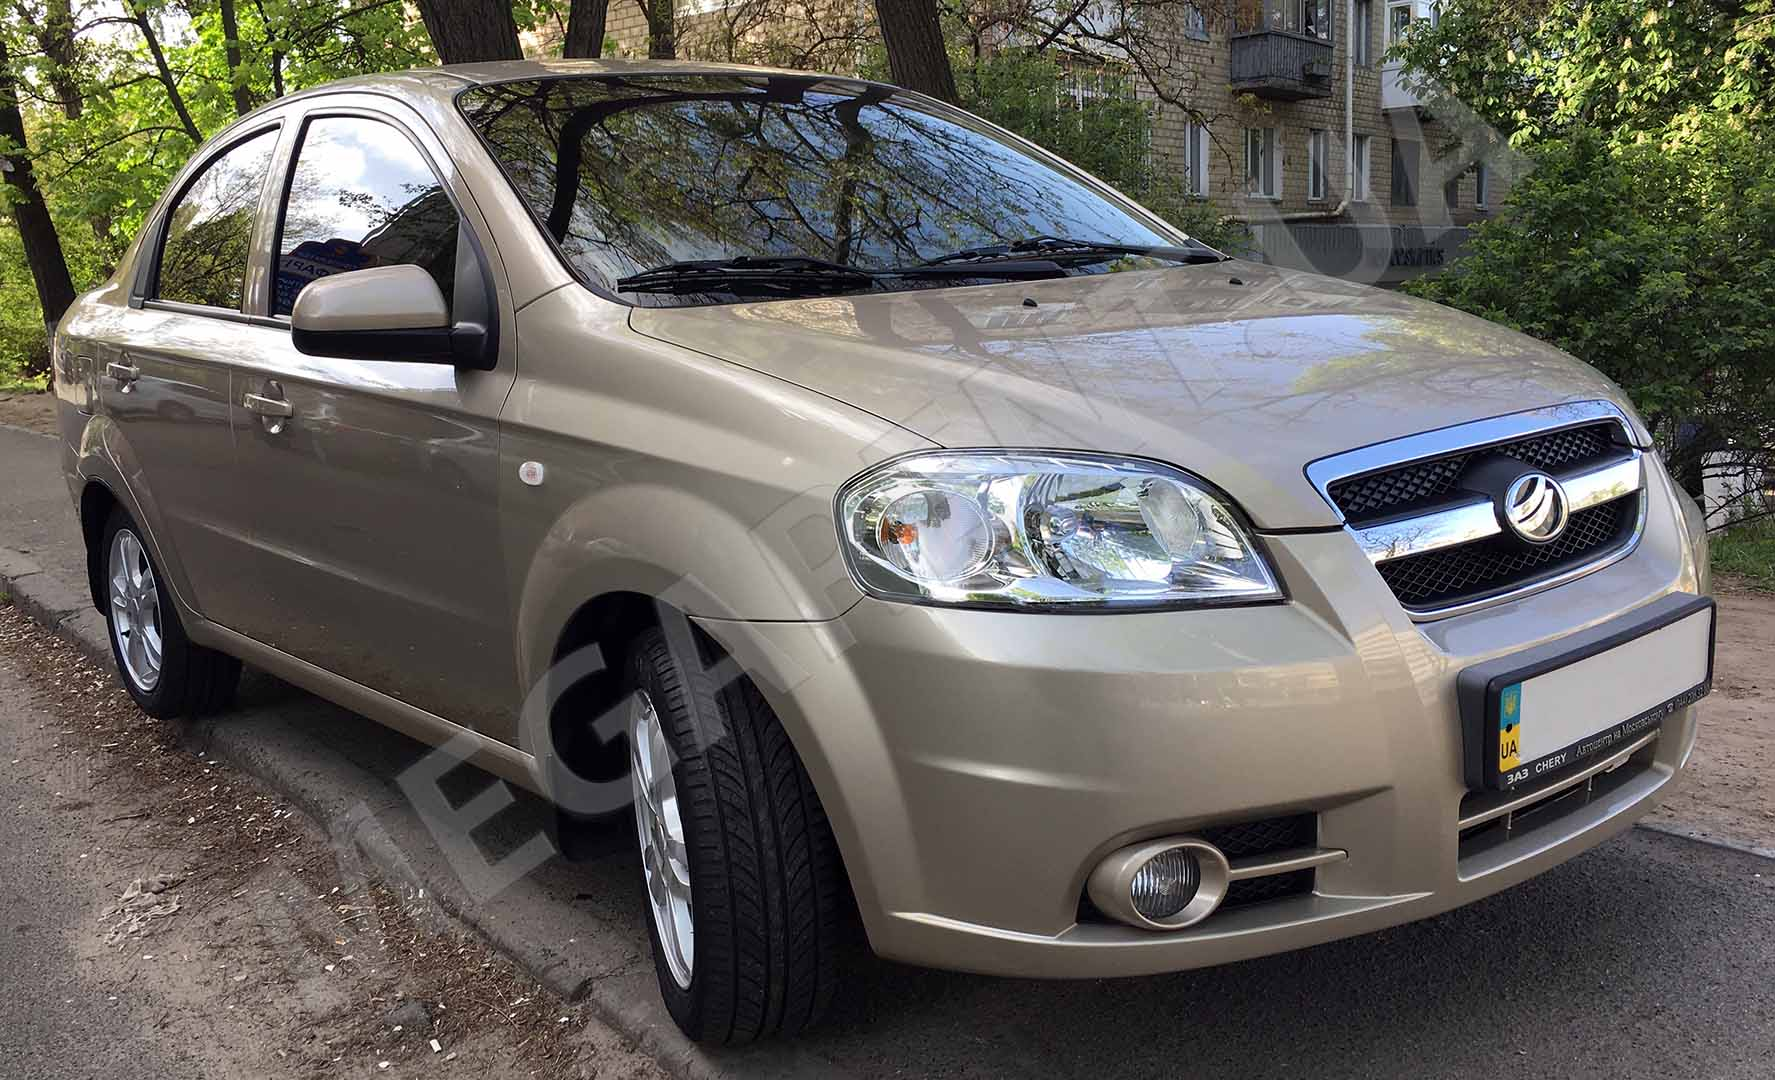 Rent a car Chevrolet Aveo (Zaz Vida) 2013 in Kyiv - Megarent